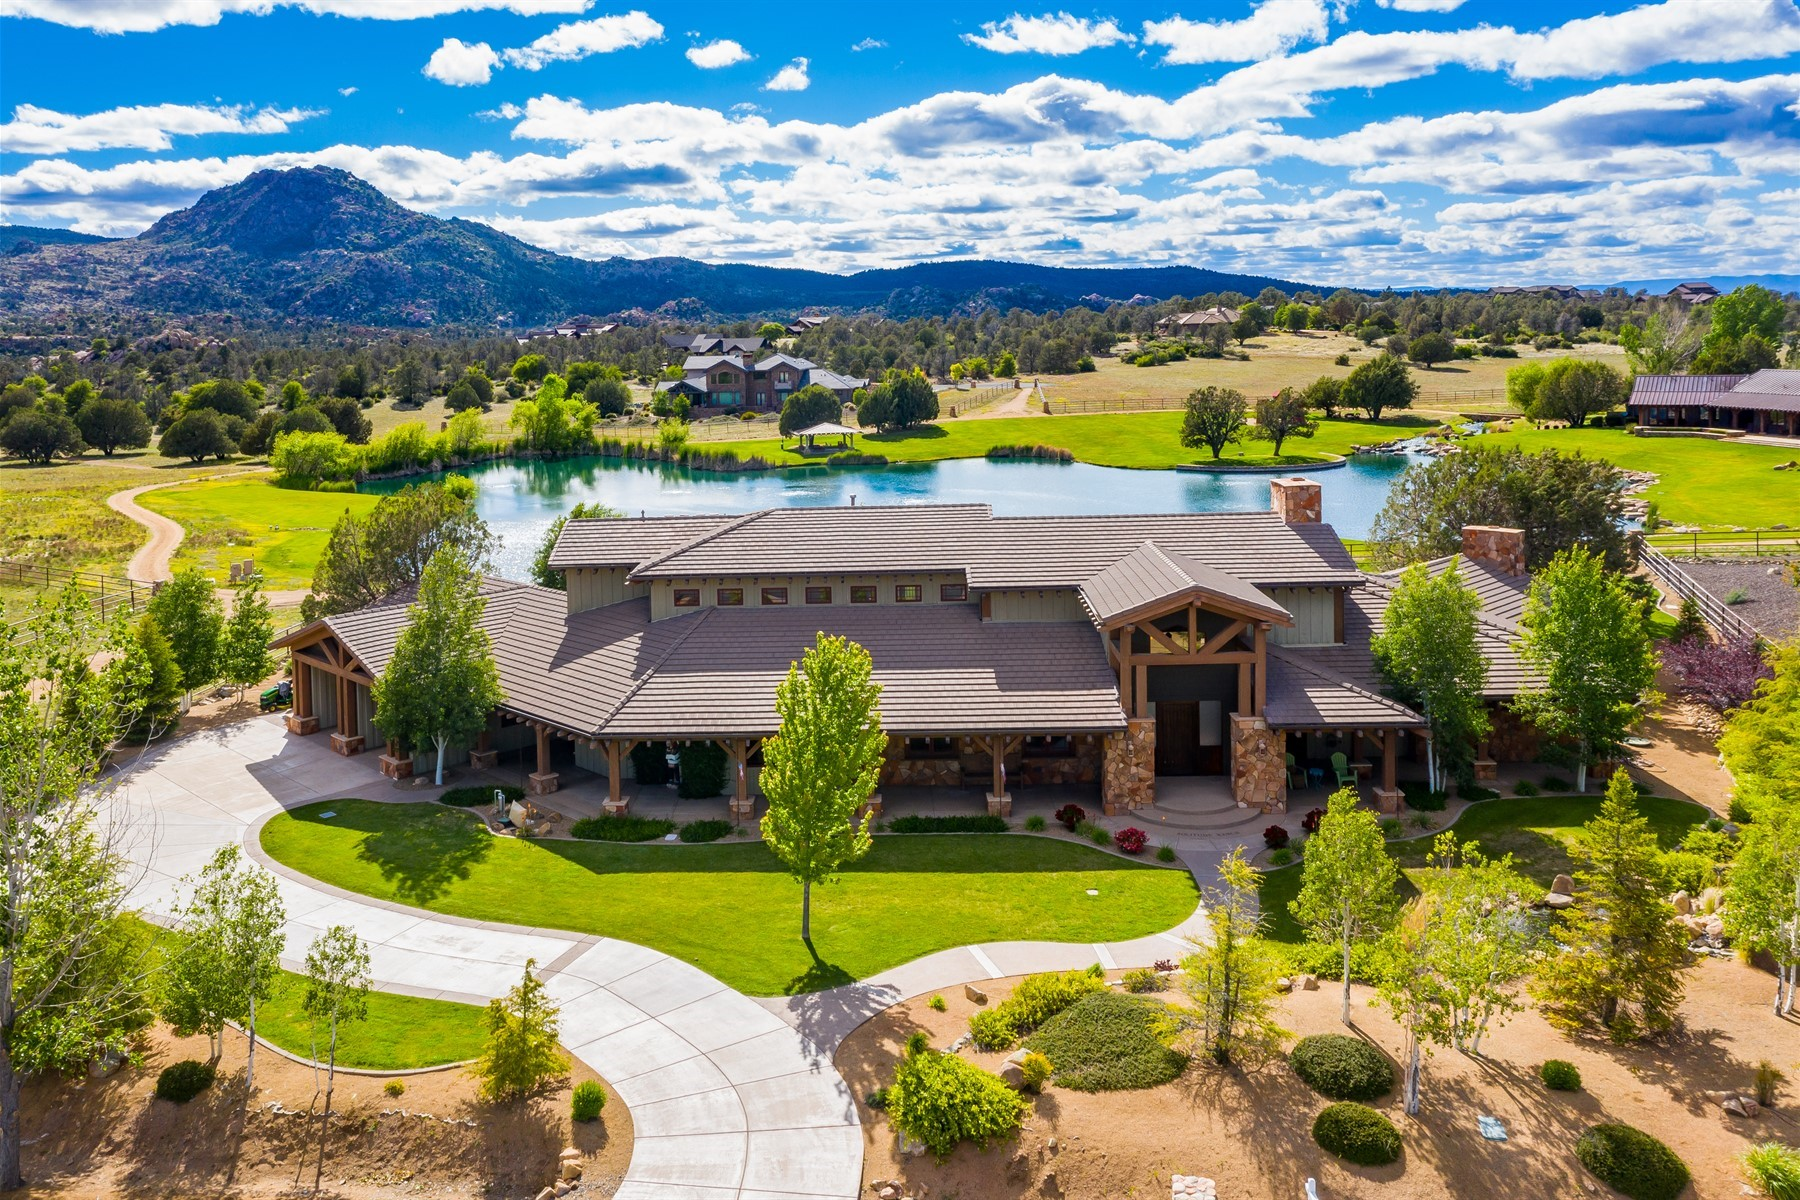 Single Family Homes for Active at 9120 N American Ranch Rd Prescott, Arizona 86305 United States